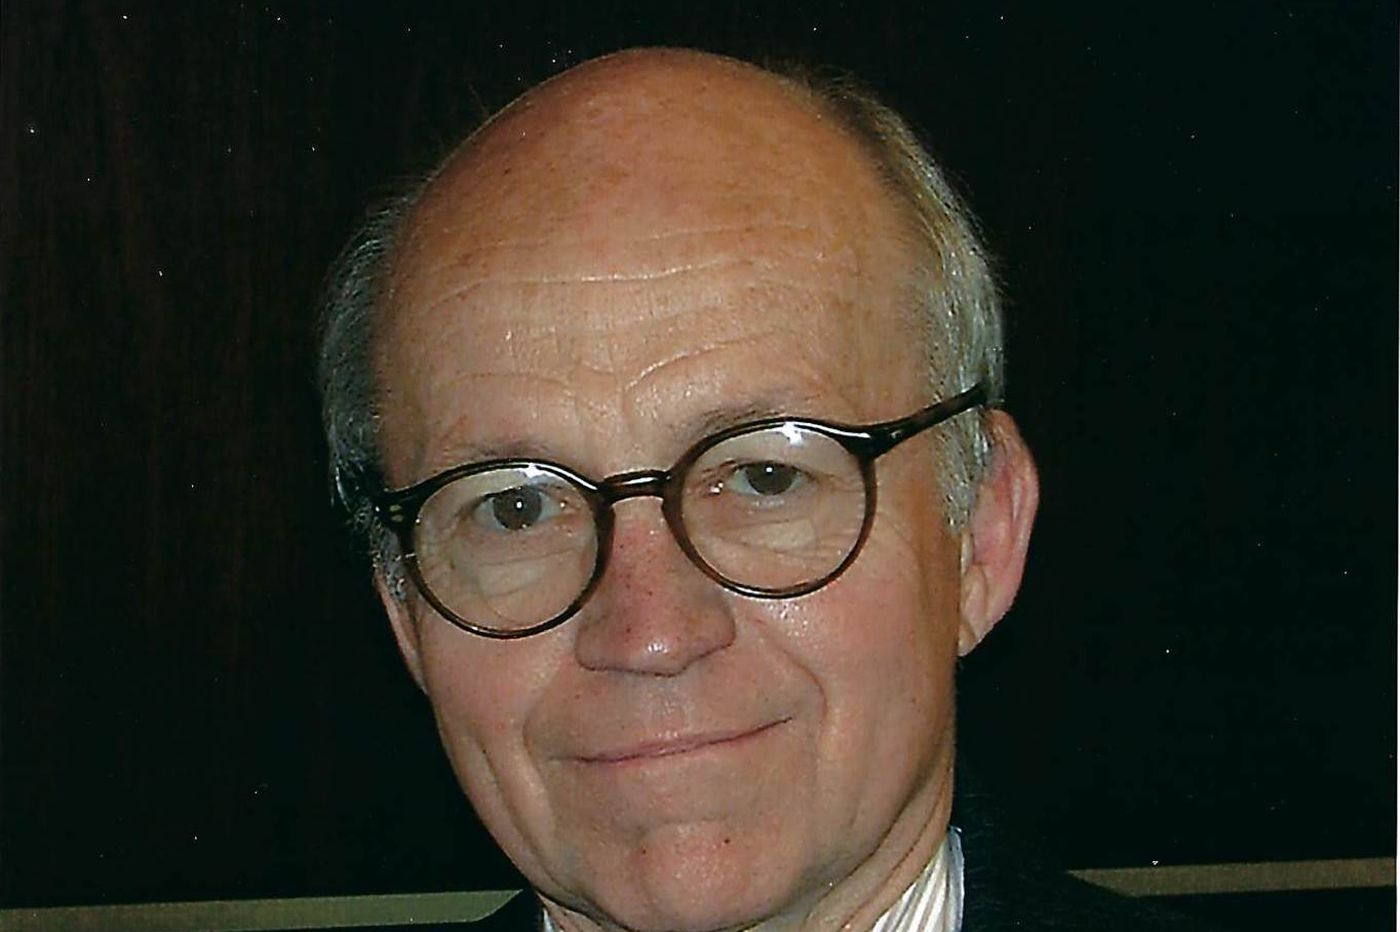 Dr. Robert E. Campbell, a leader in the field of radiology, dies at 88